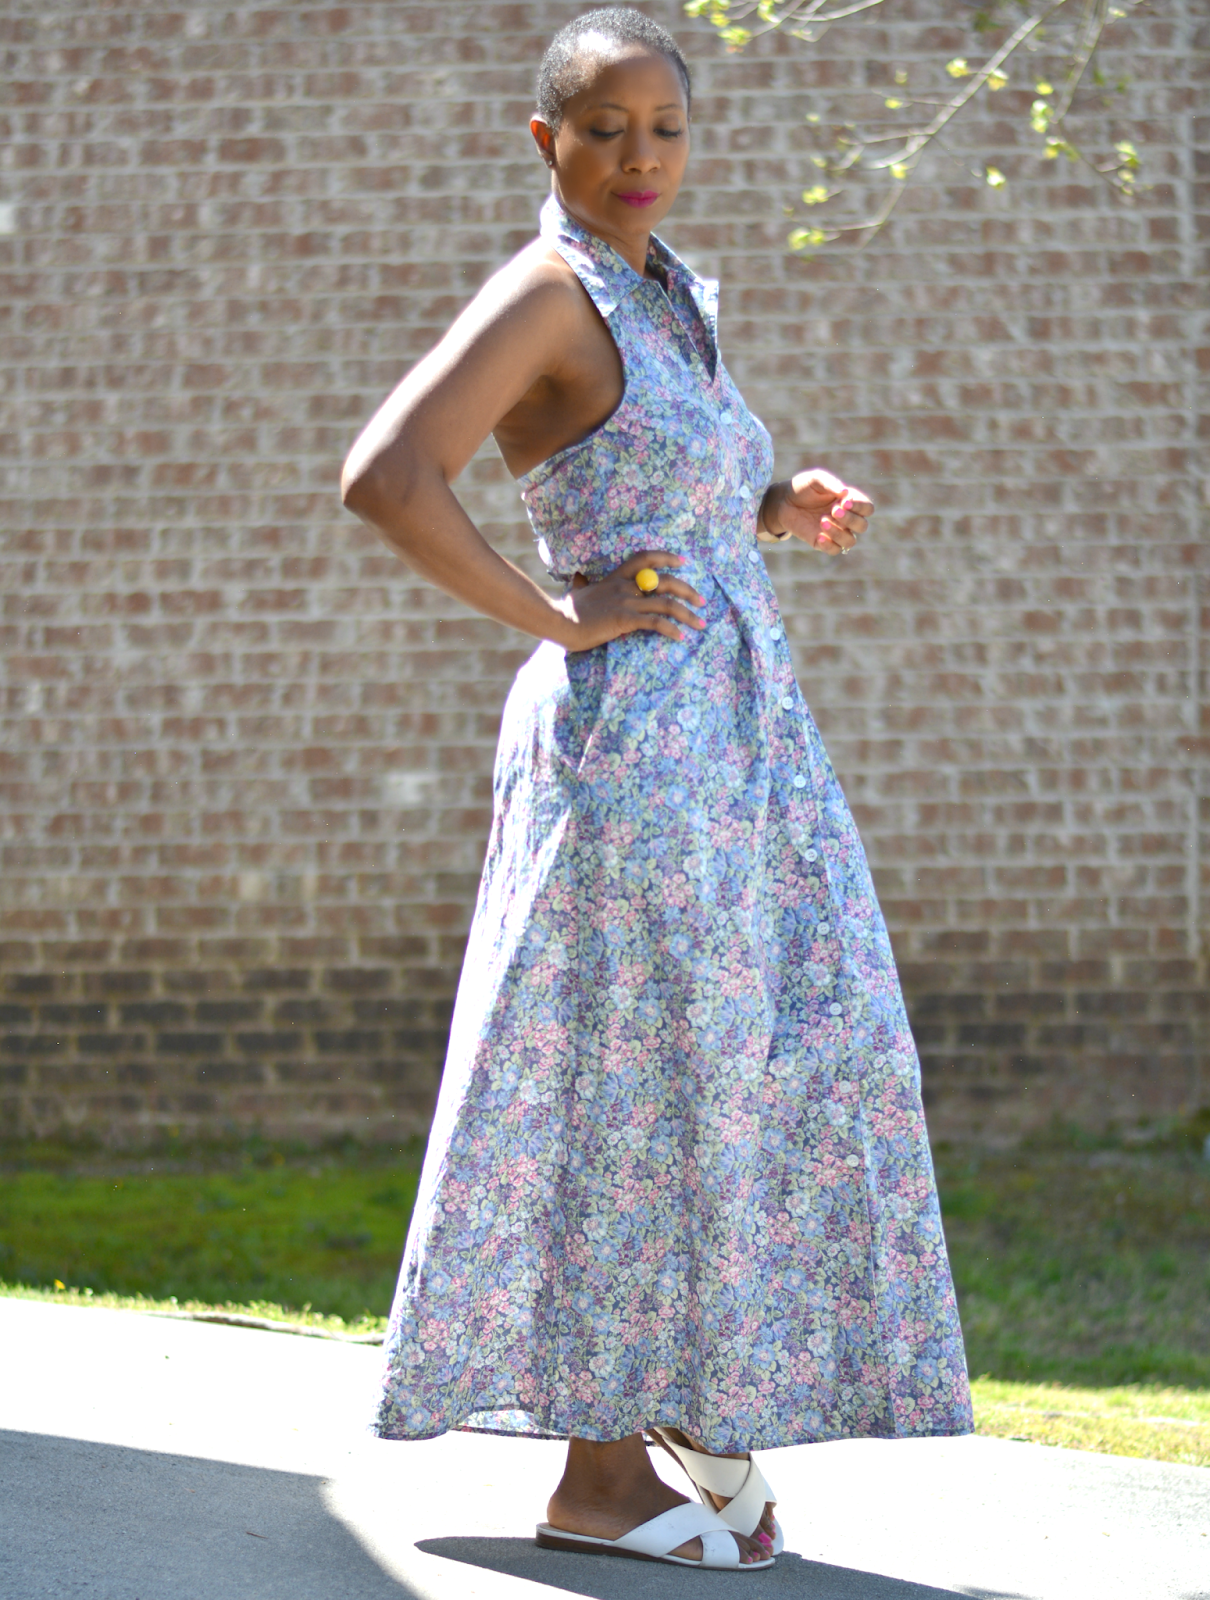 Upsize a shirt dress with a halter refashion to create more room in a too tight dress.